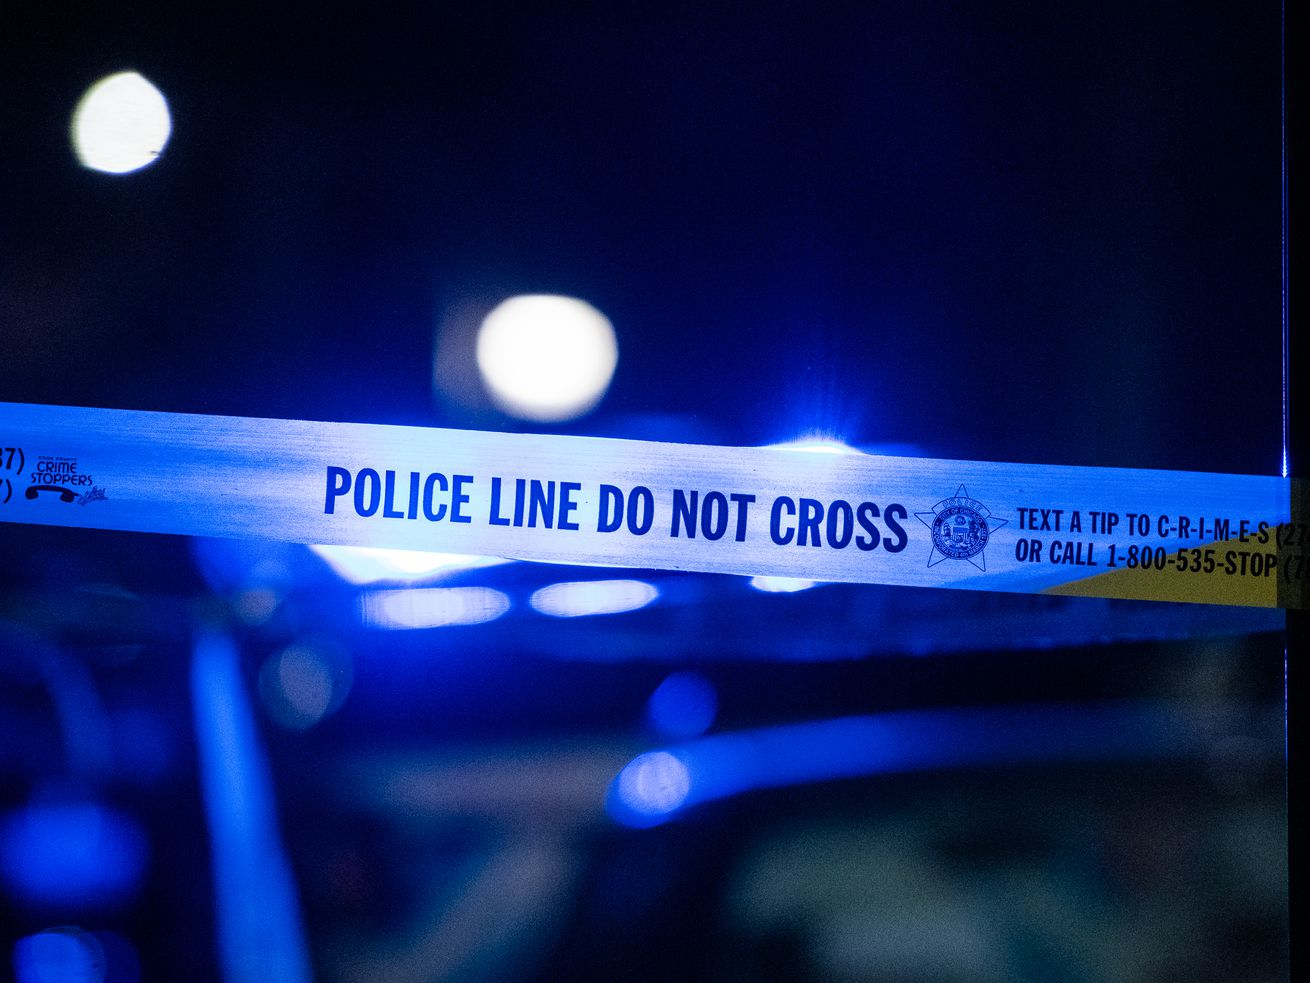 Nine people were shot, one fatally Jan. 12 in Chicago.